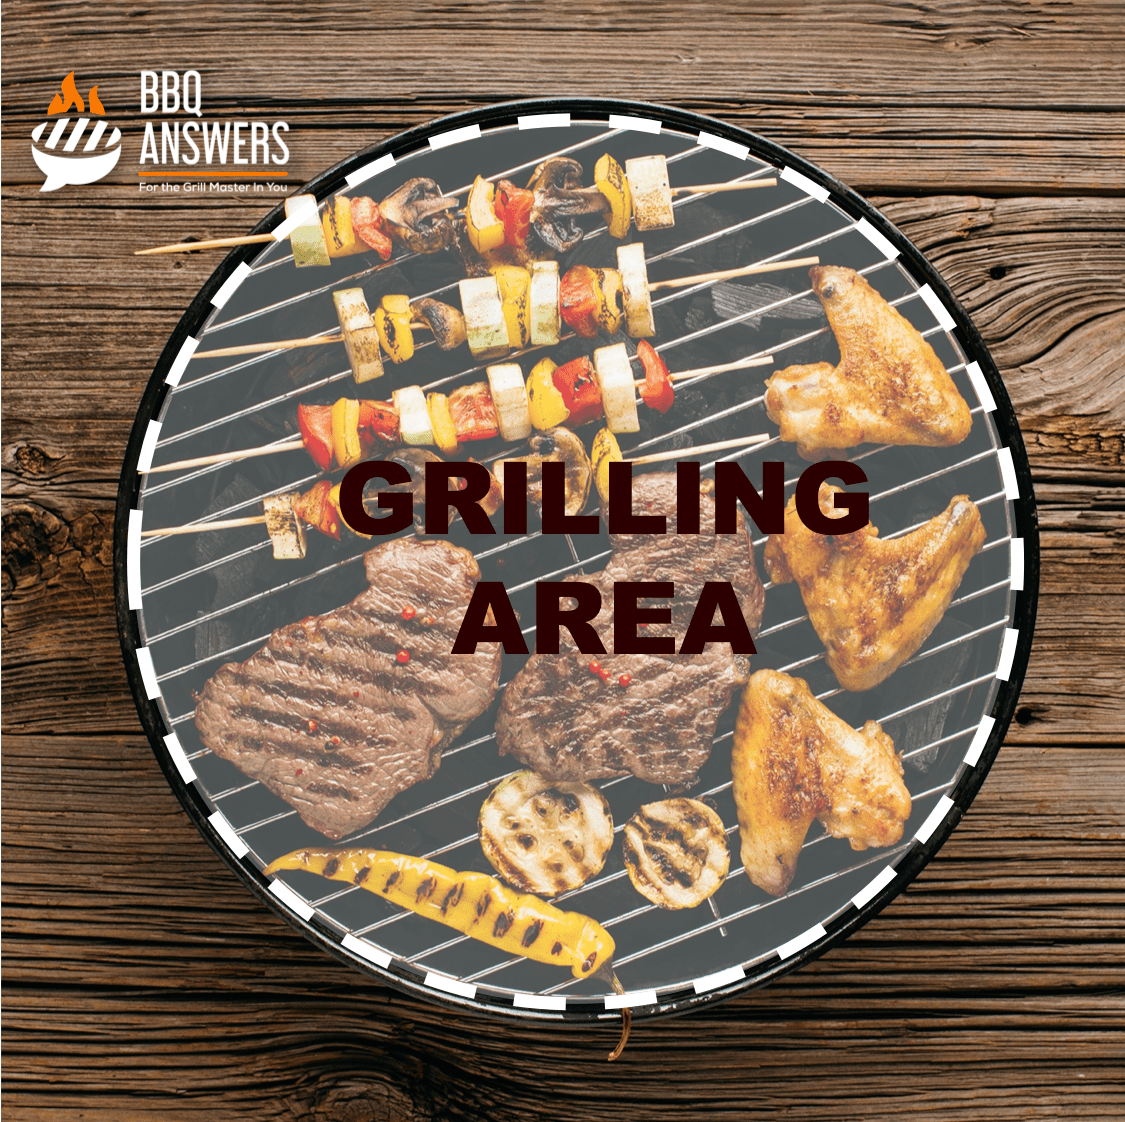 Grilling Area | Charcoal Grill | BBQanswers